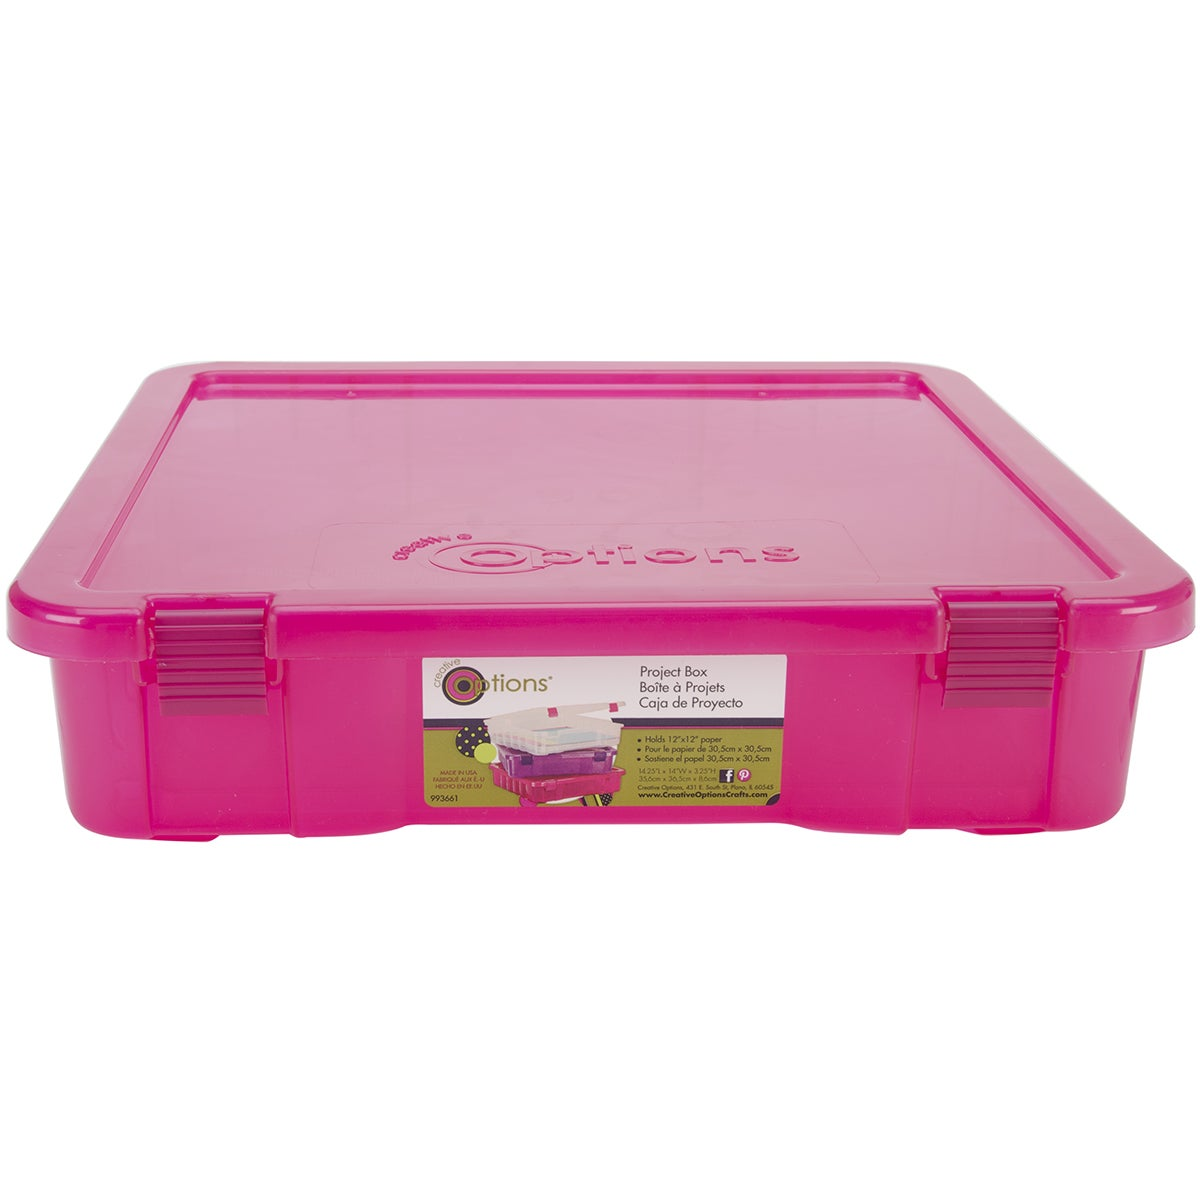 Creative Options Project Box14inX14inX3in Magenta Transparent